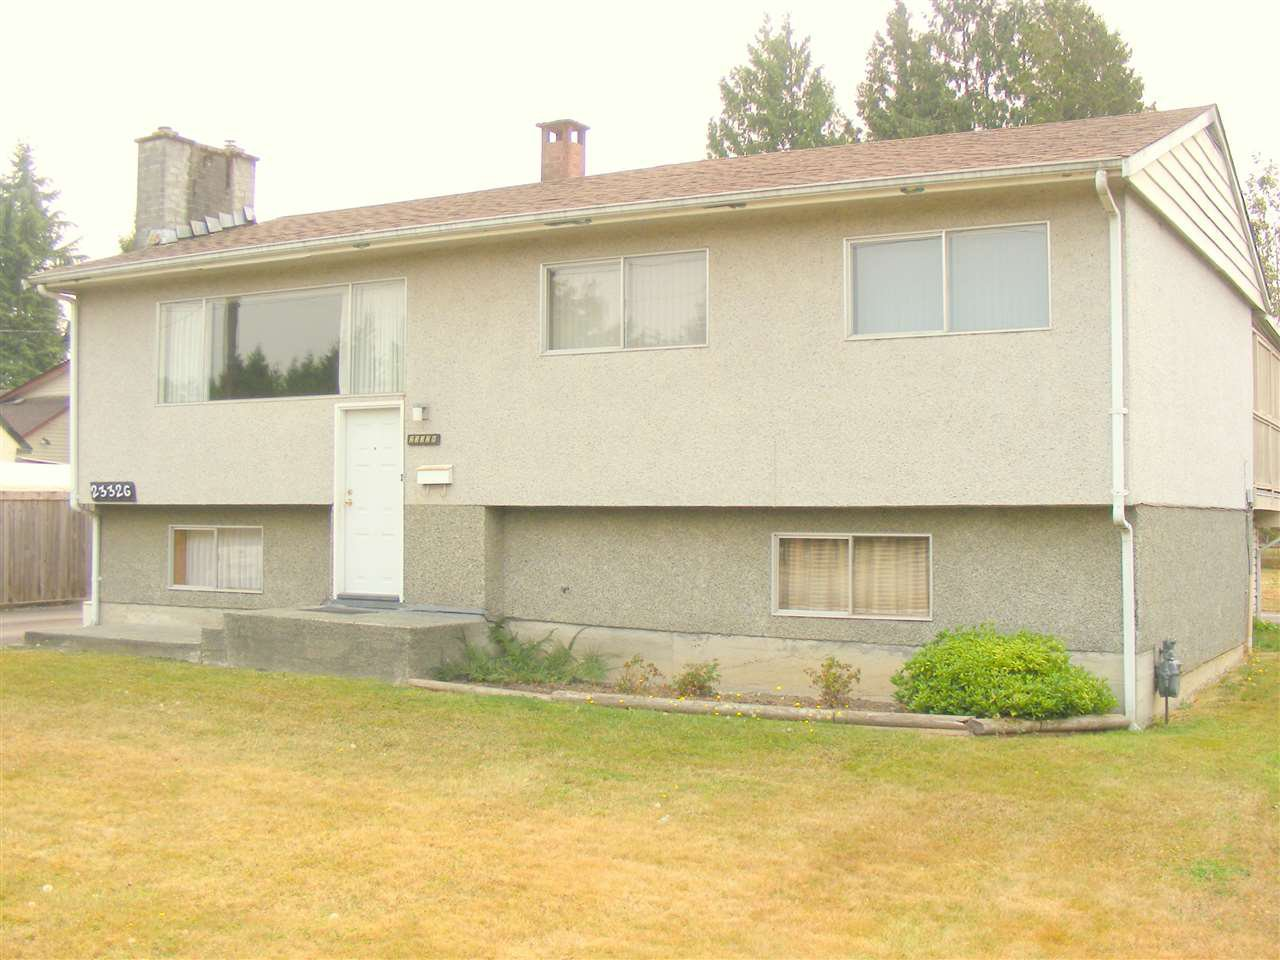 Main Photo: 23326 DEWDNEY TRUNK Road in Maple Ridge: East Central House for sale : MLS®# R2203365